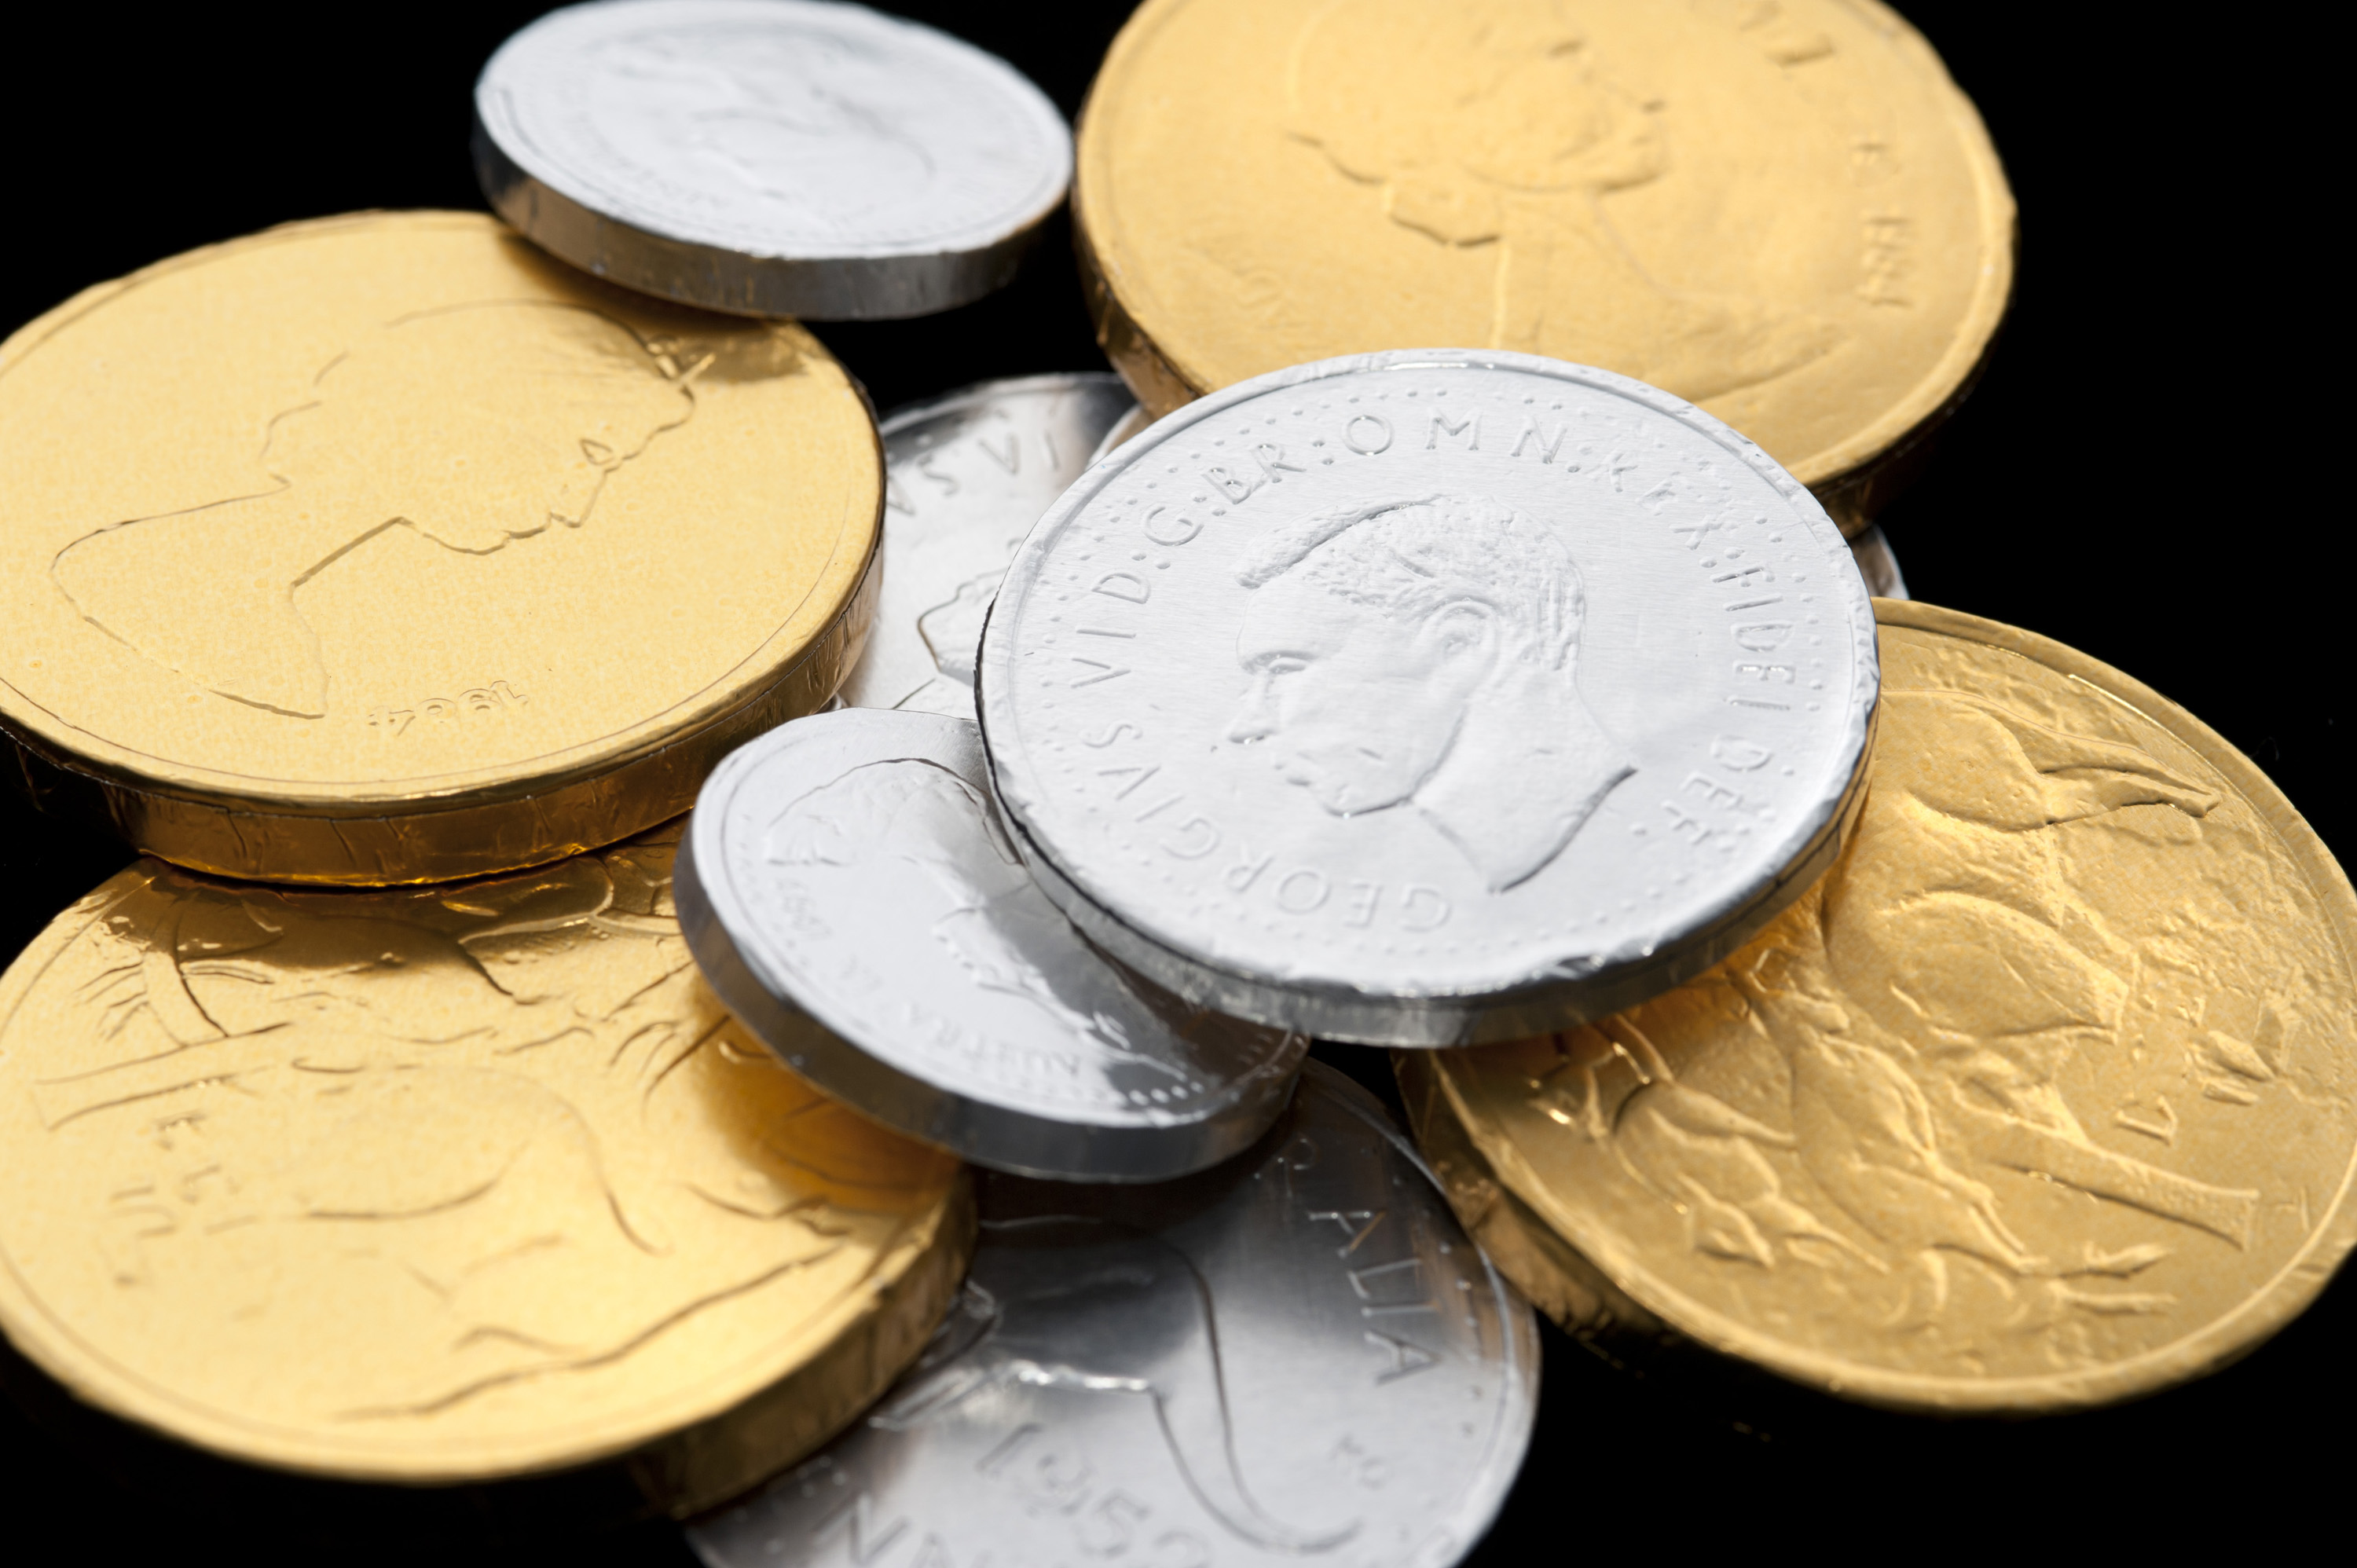 Close-up of chocolate coins wrapped in golden and silver shiny paper on black background